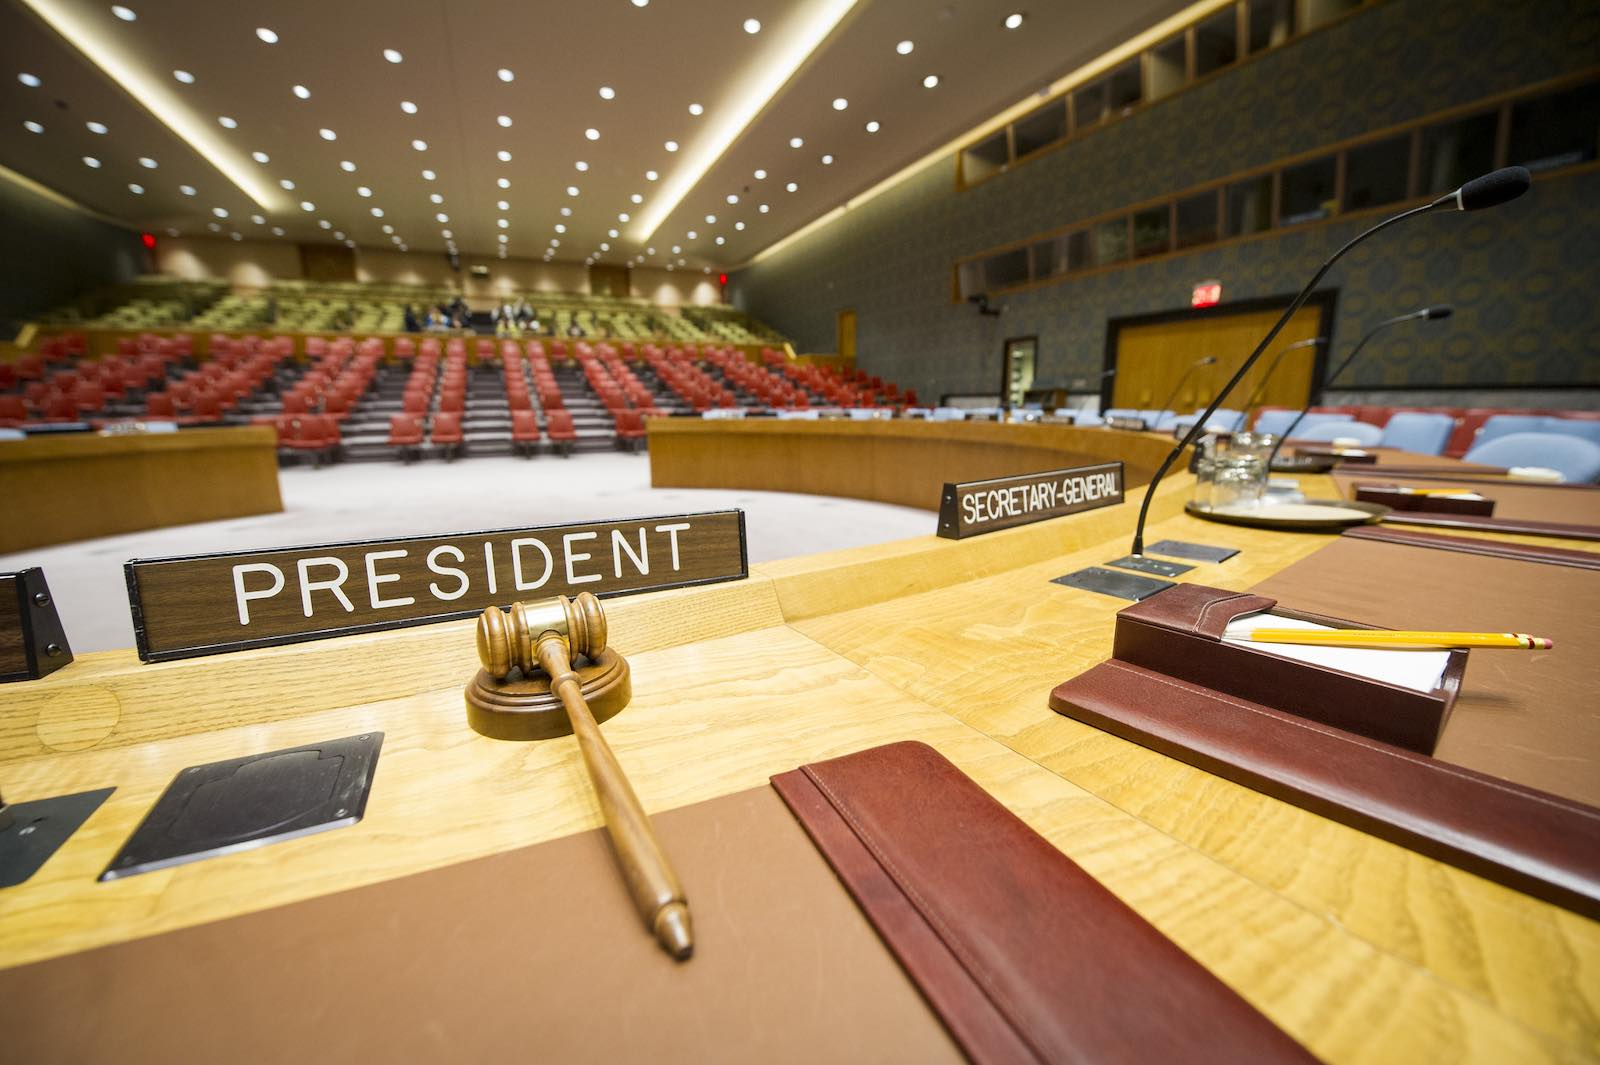 Security Council Chambers at UN Headquarters in New York (Rick Bajornas/UN Photo/Flickr)